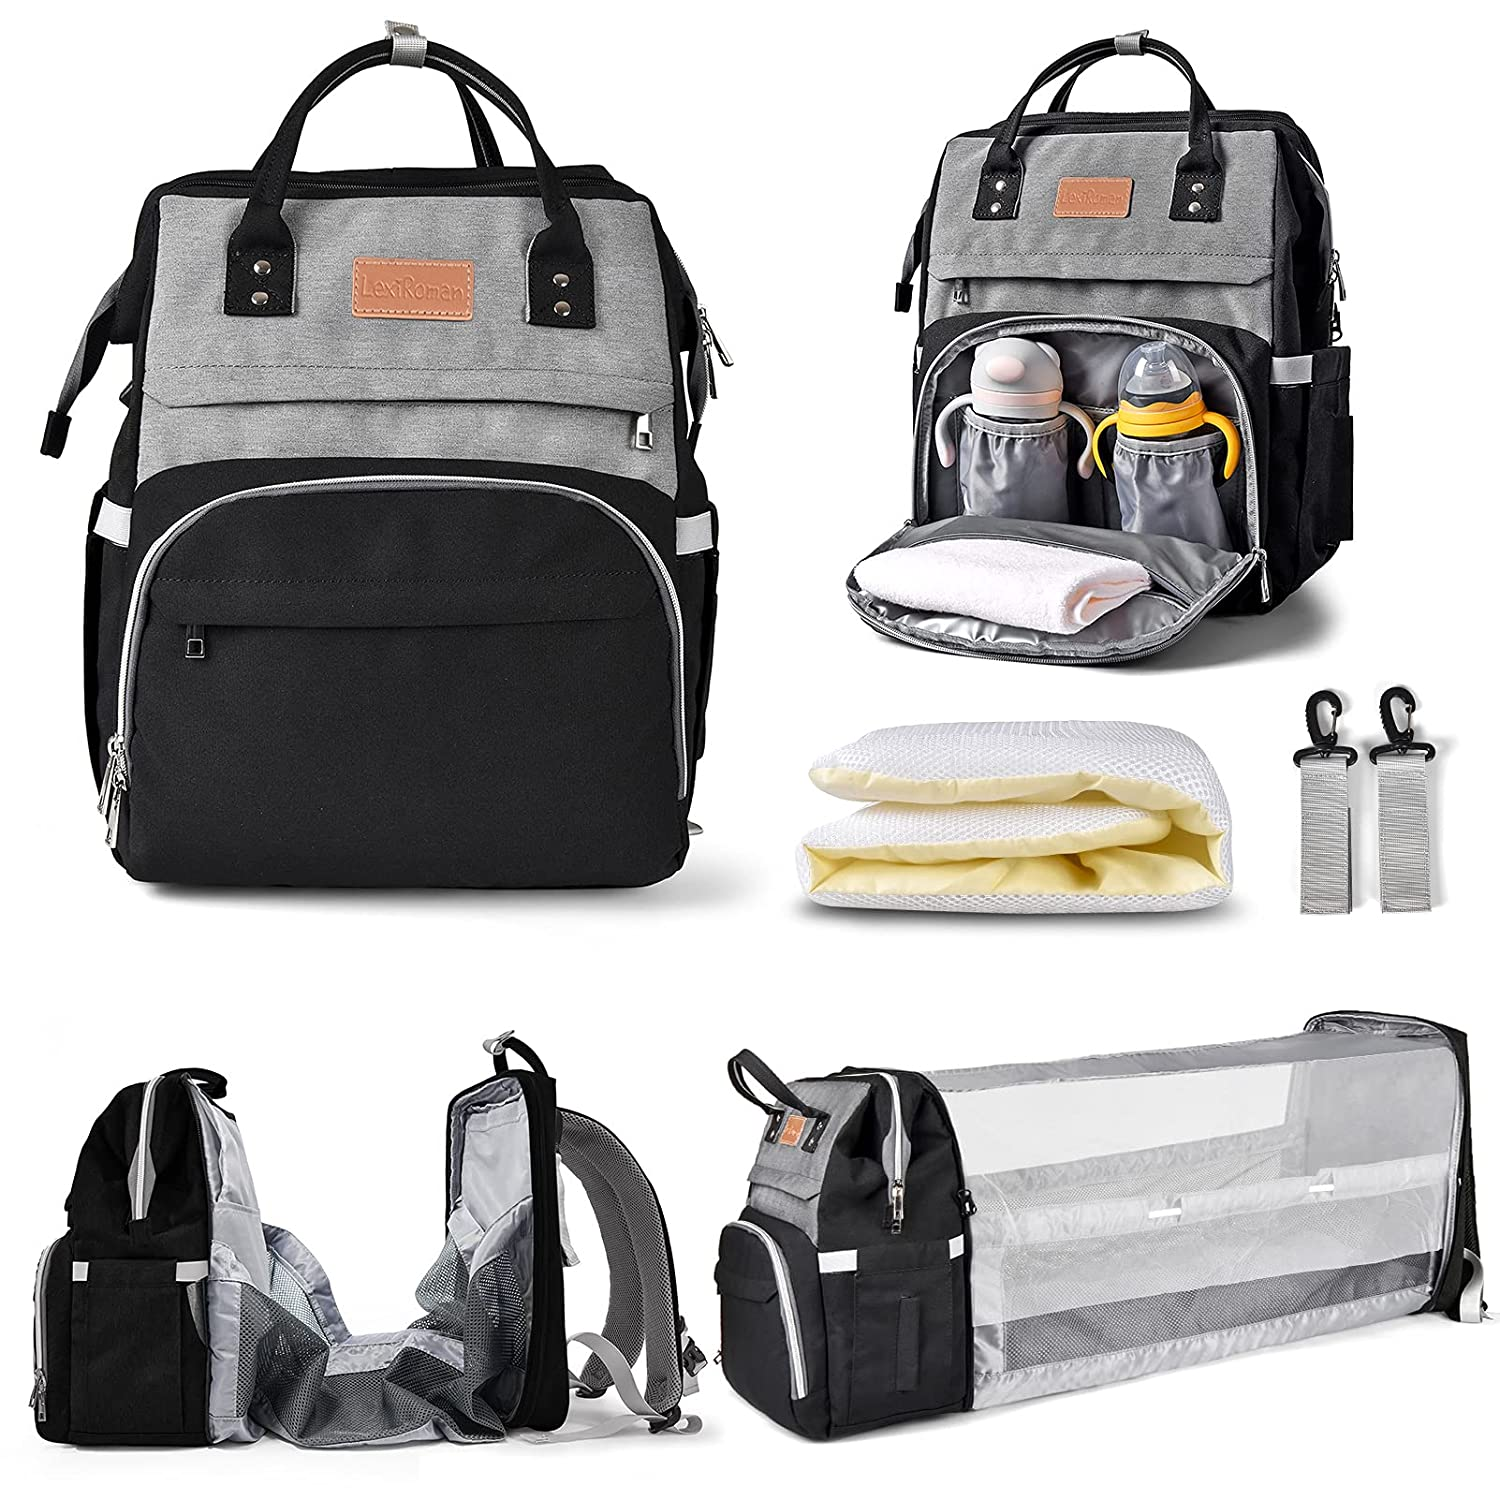 Diaper Bag Backpack Multi-Function Waterproof Travel Backpack Nappy Bags for Baby Care,Diaper Bag with Foldable Baby Bed and USB Large Capacity,Stylish and Durable-Black Gray